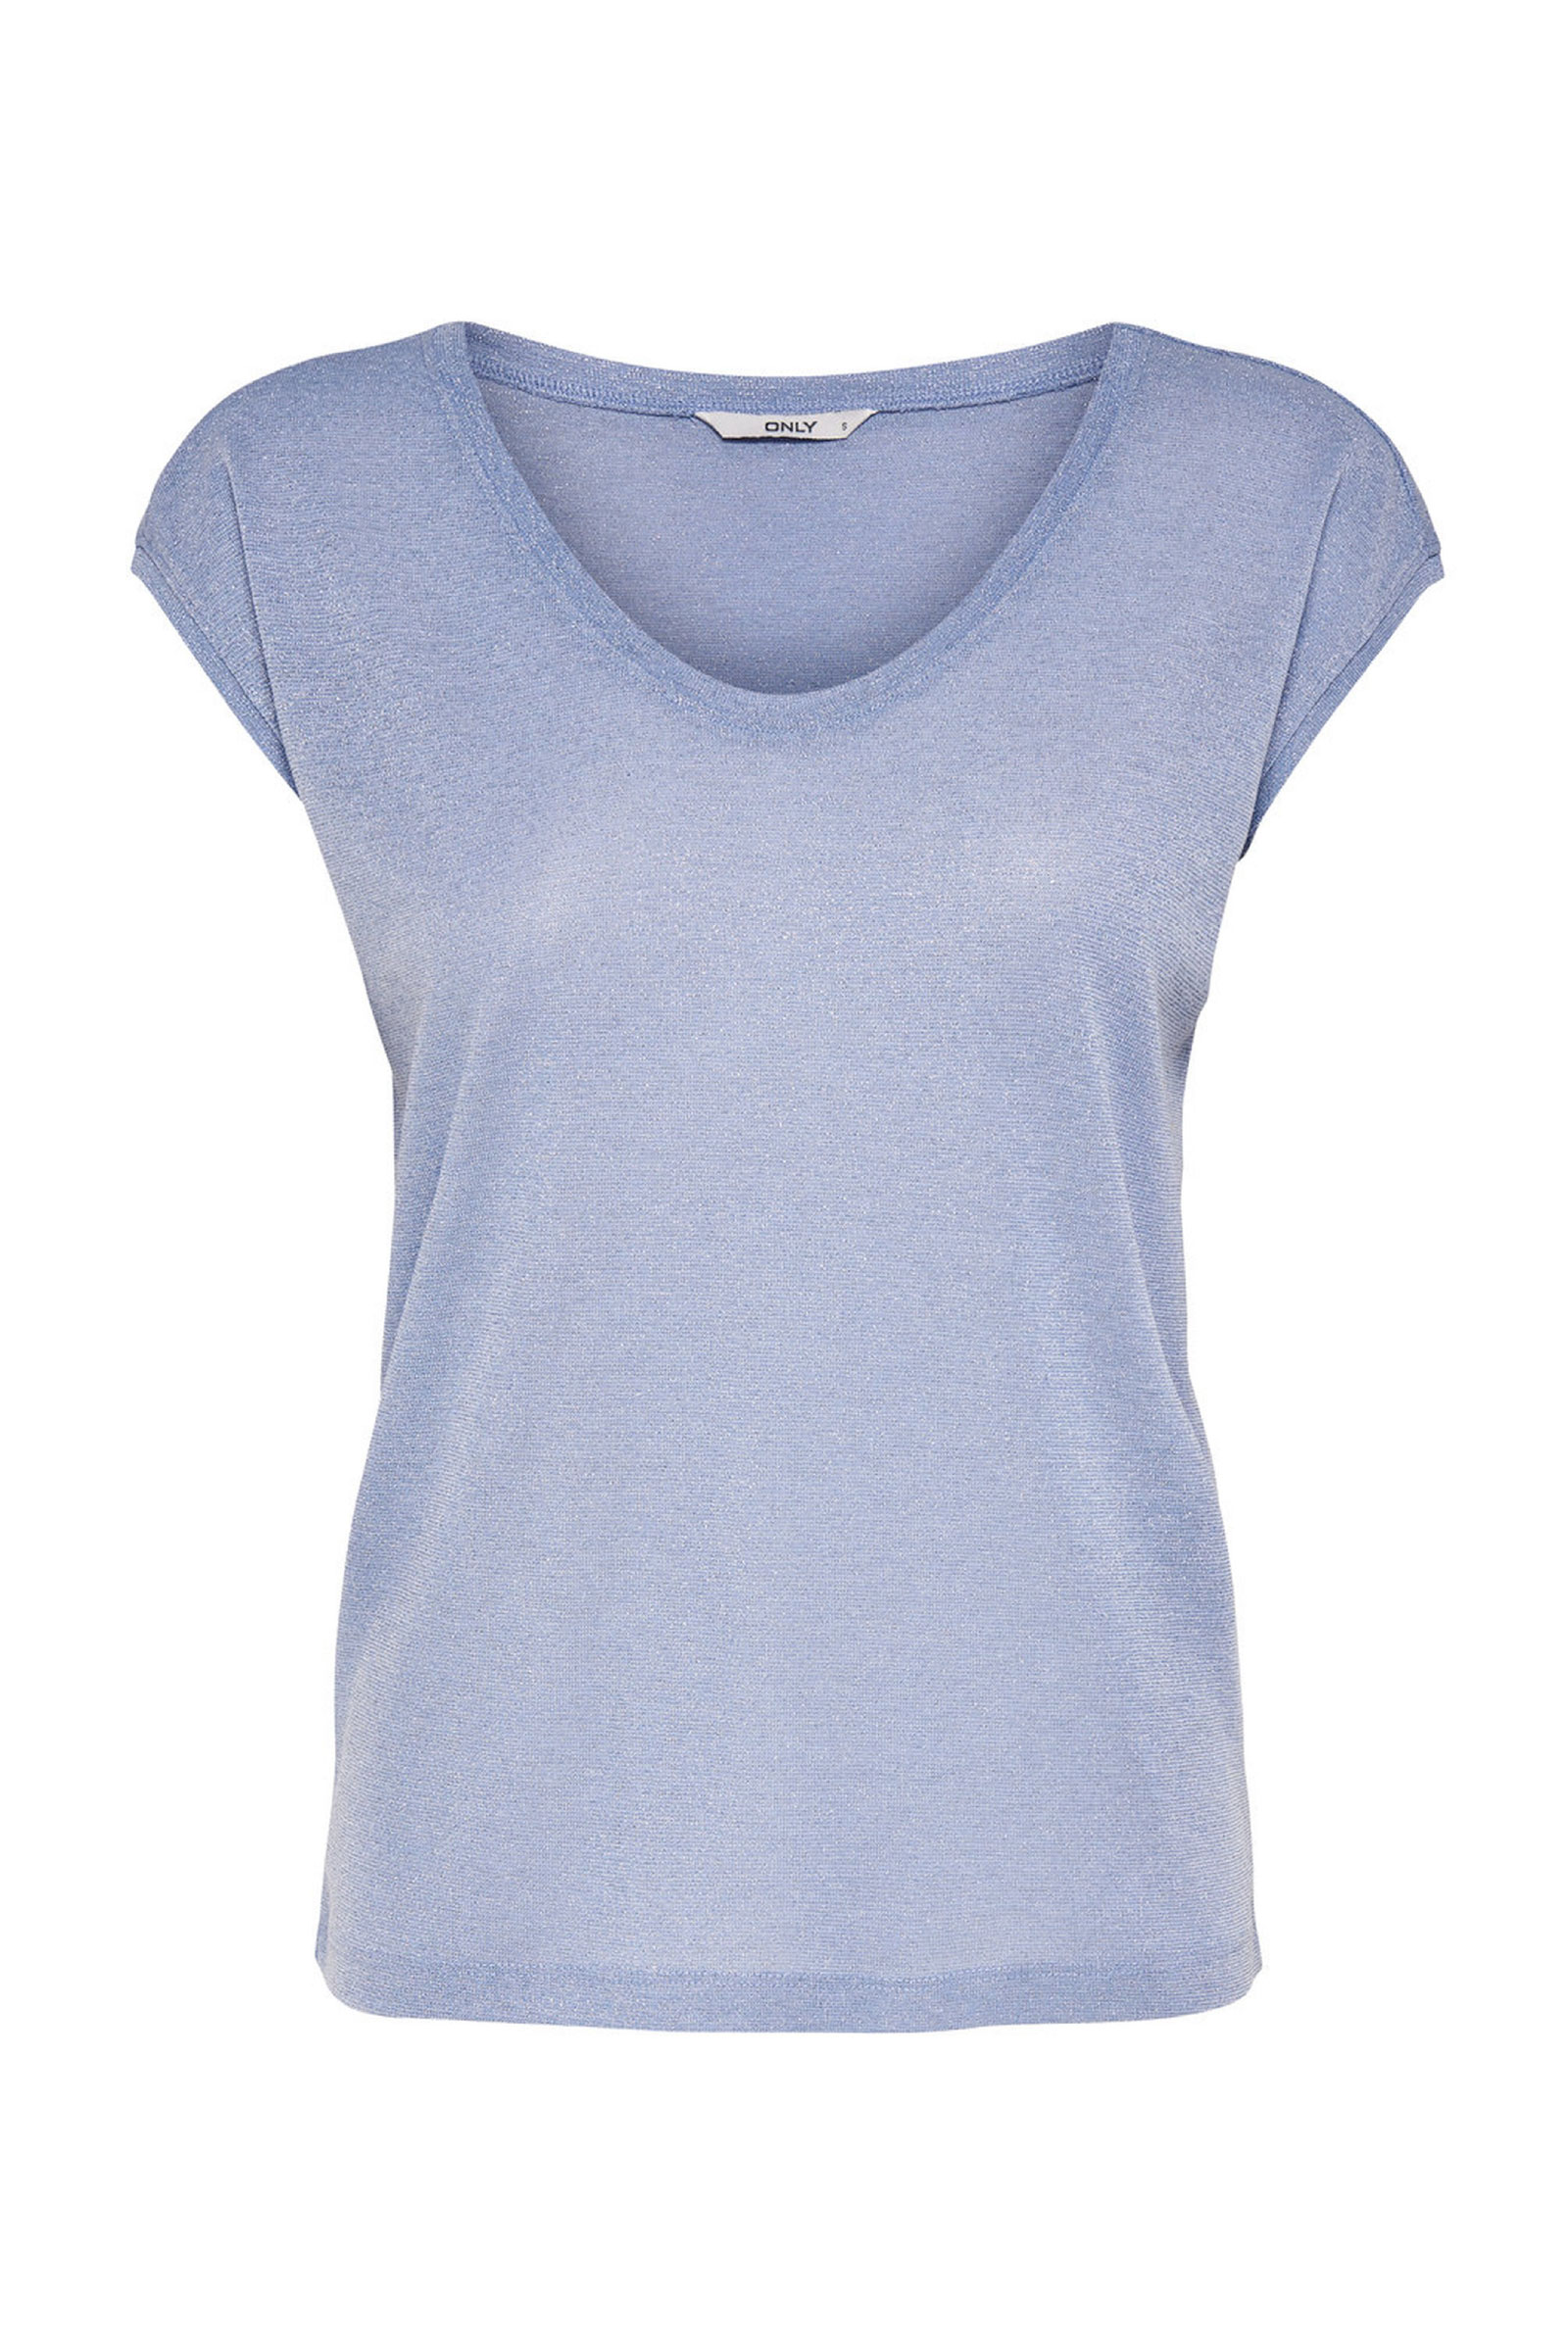 ONLY Top Donna ONLY | Top | 15136069Halogen Blue